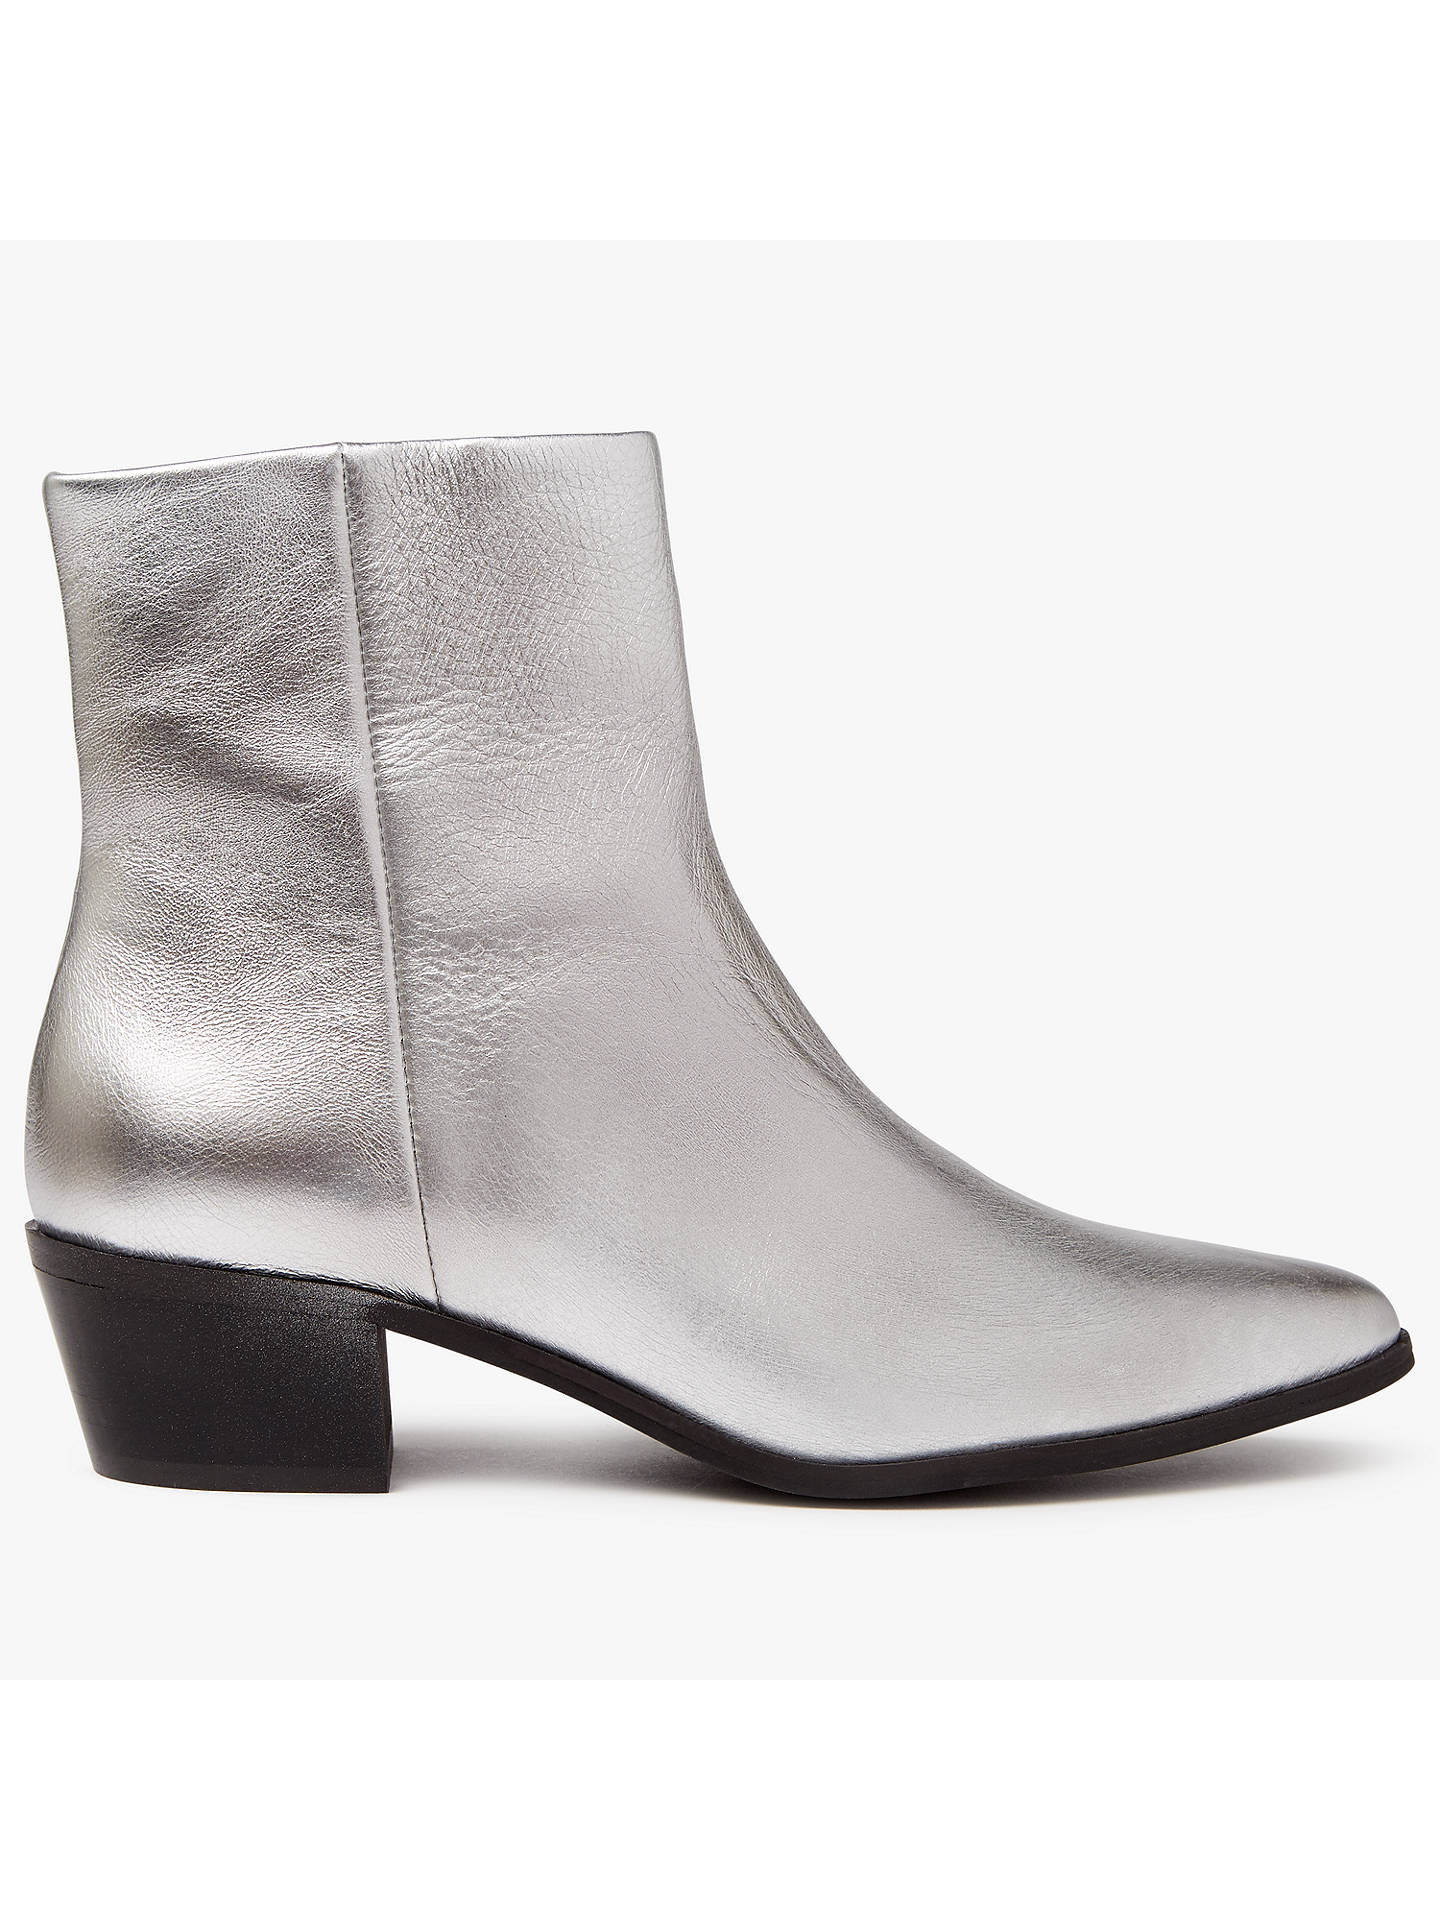 Pieces Pedrine Leather Boots Silver At John Lewis Partners